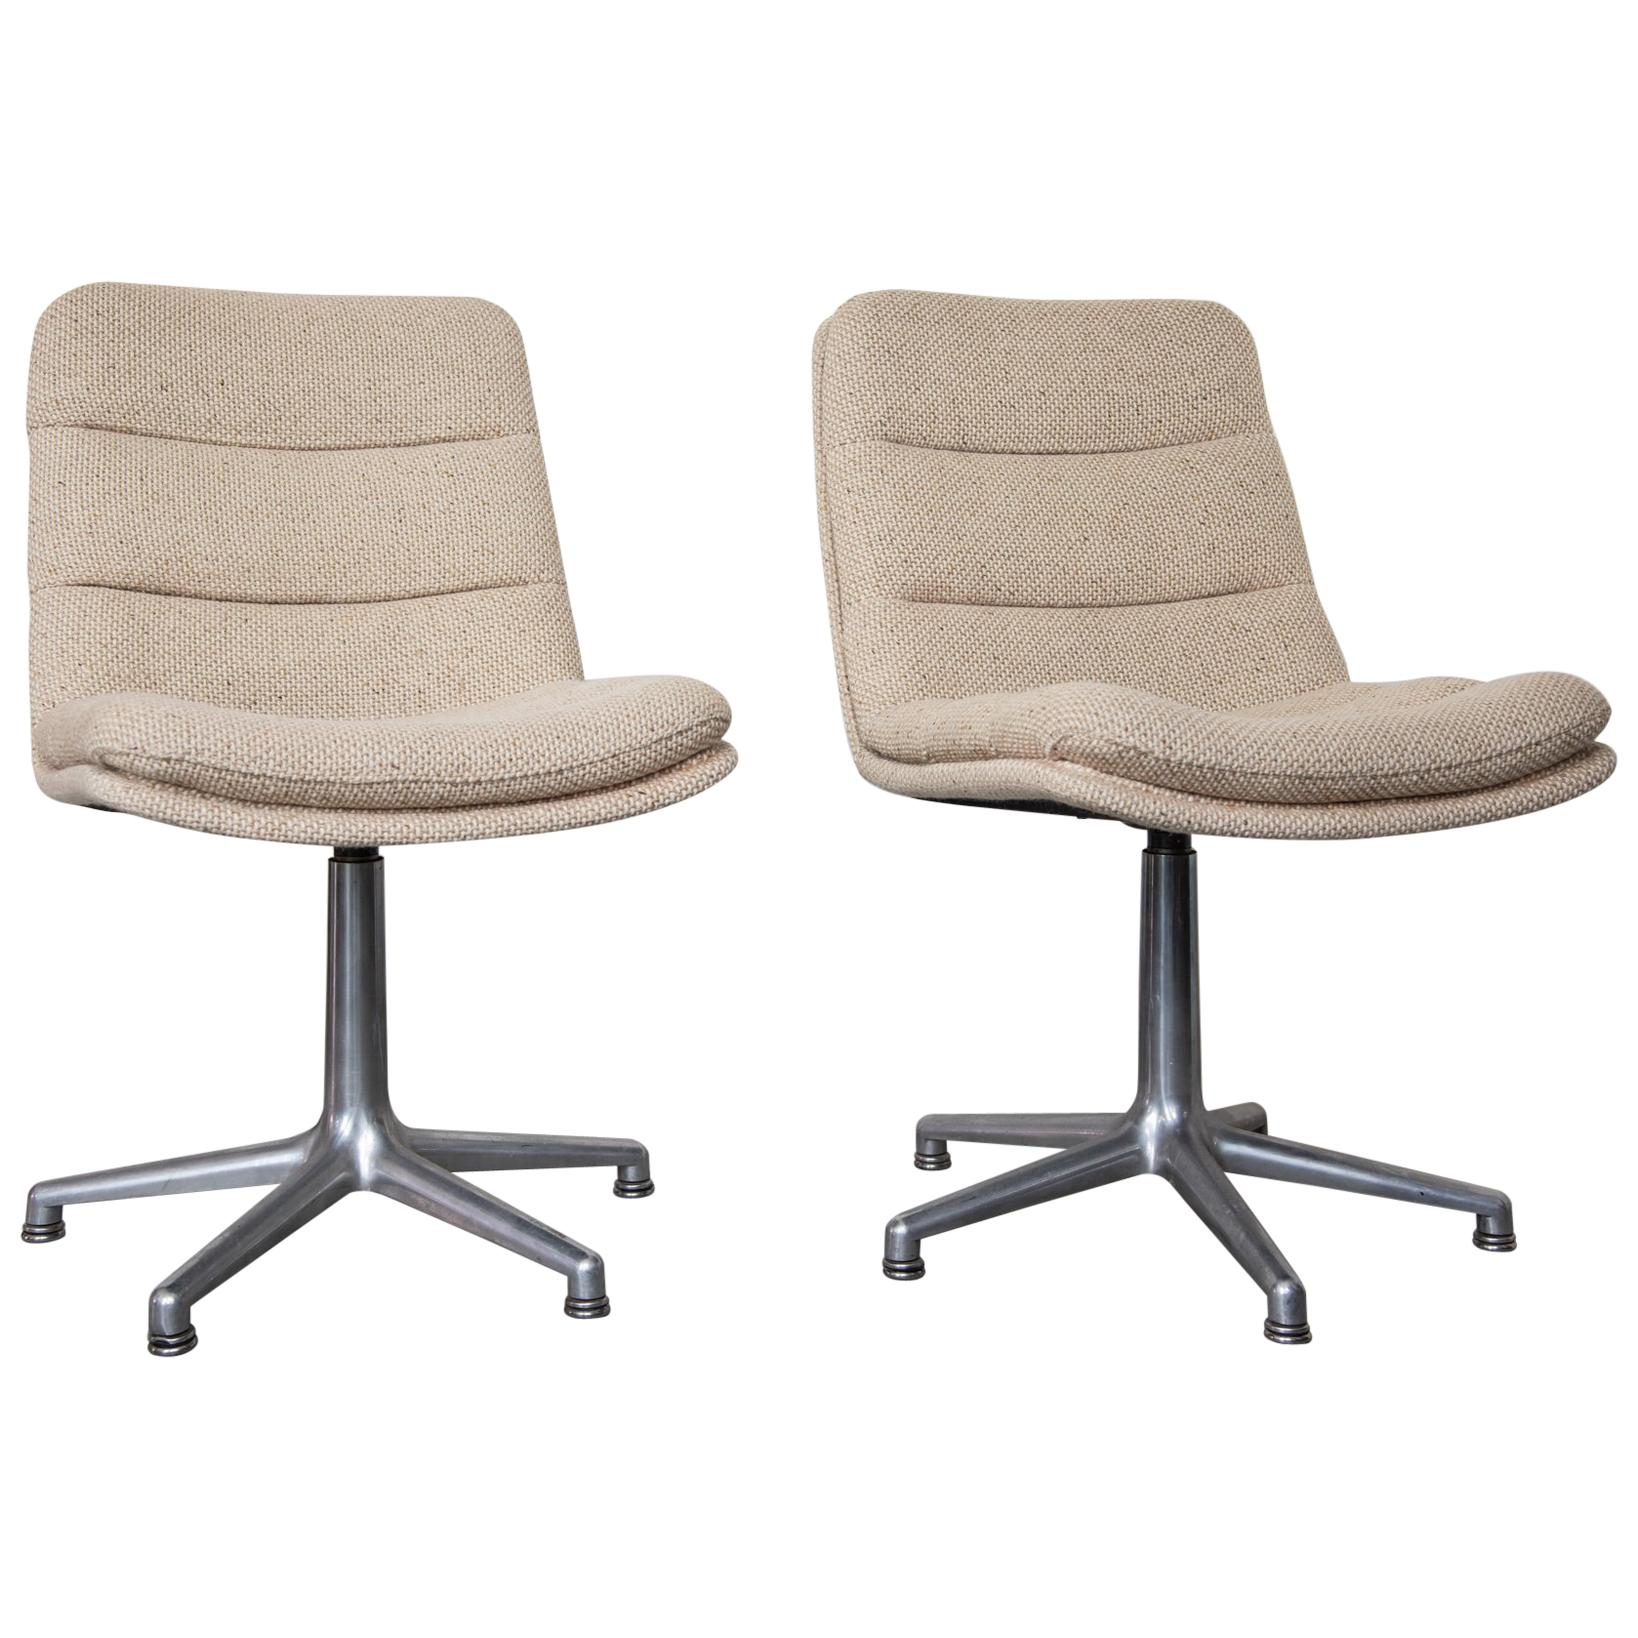 Set Of Two Swivel Desk Chairs Designed Geoffry Harcourt For Artifort